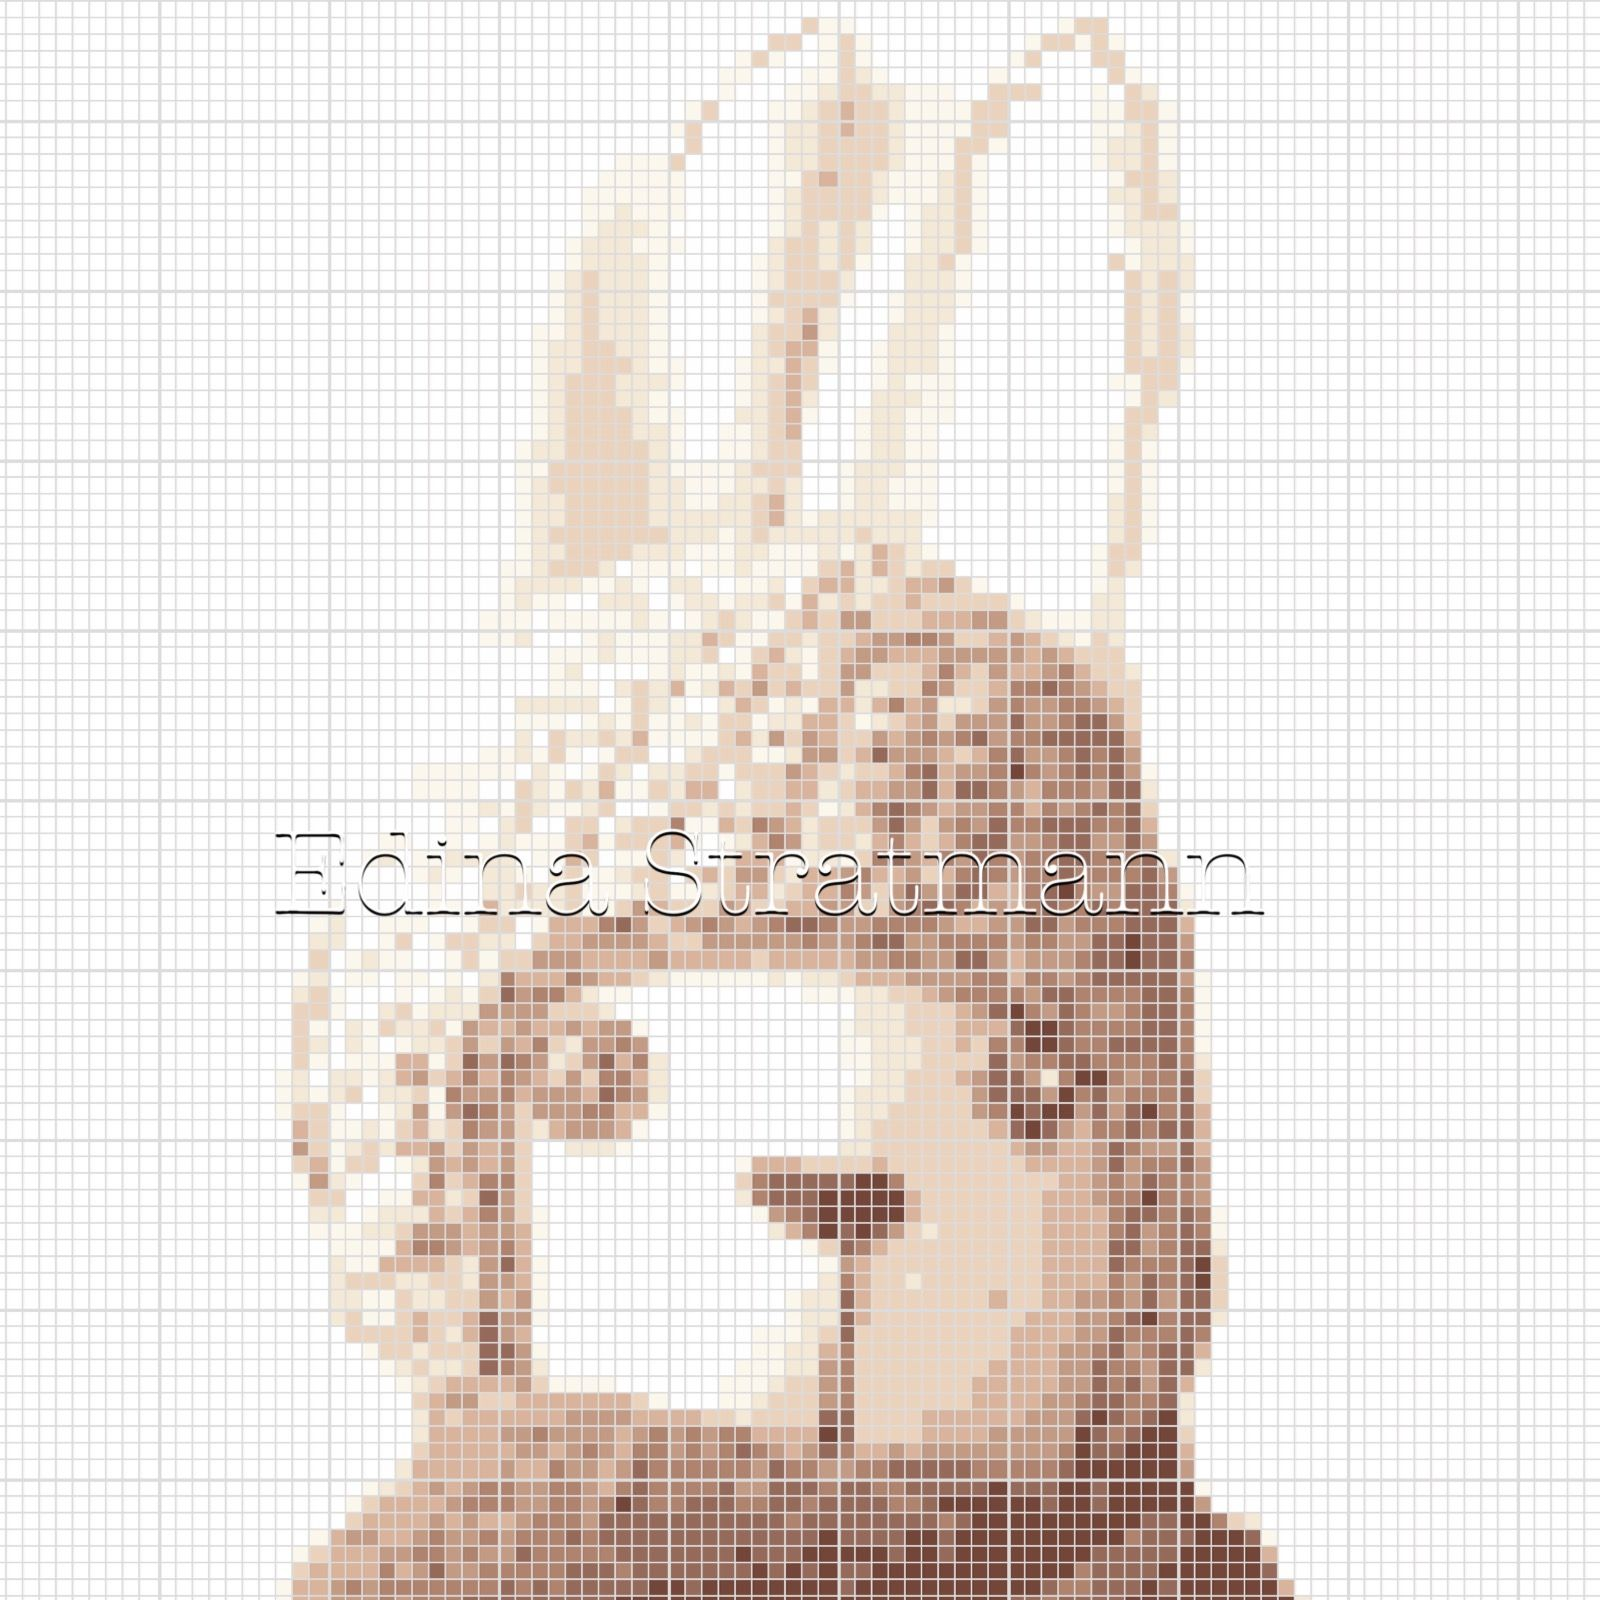 Kreuzstich Vorlage Hase Crossstitch Pattern Rabbit Quelle: http ...